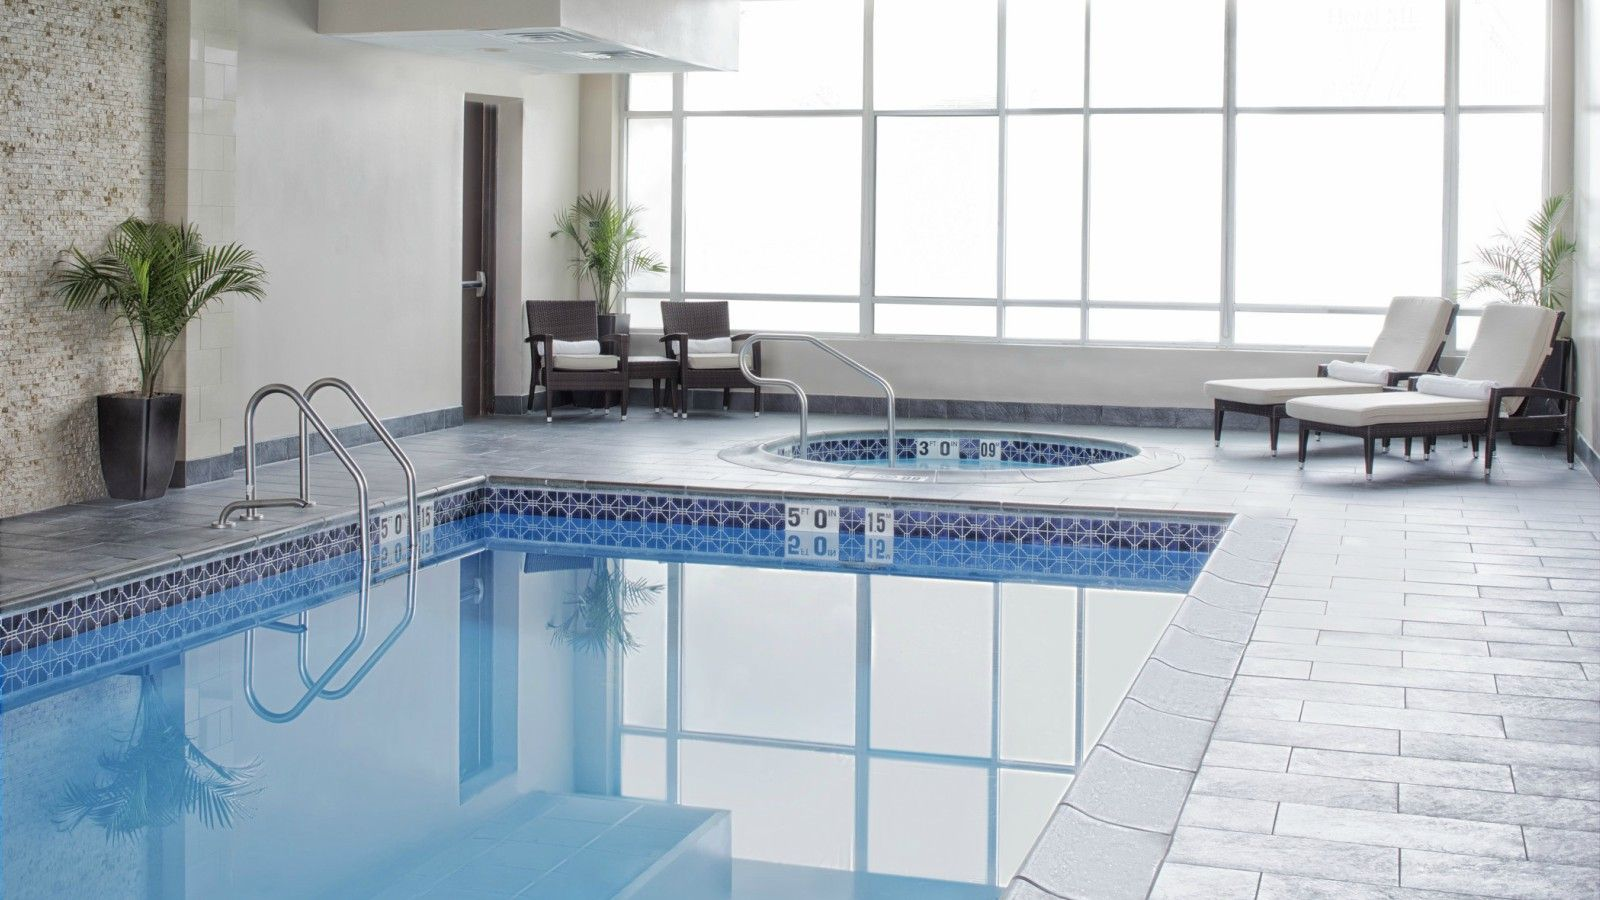 Hotel Features - Indoor Pool & Whirlpool